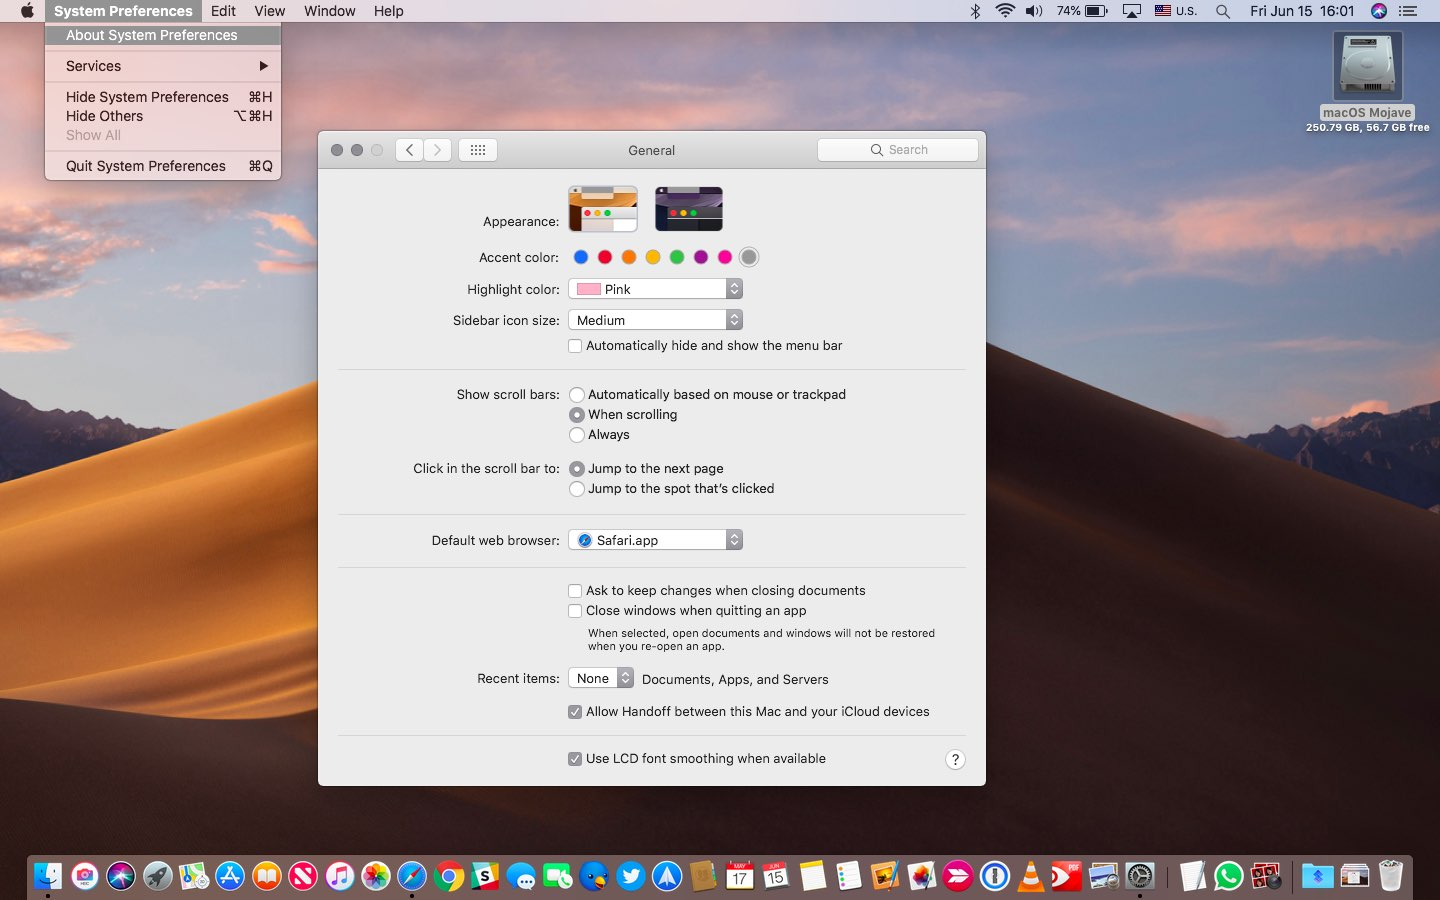 macOS Mojave Light Mode with the gray accent and highlight color